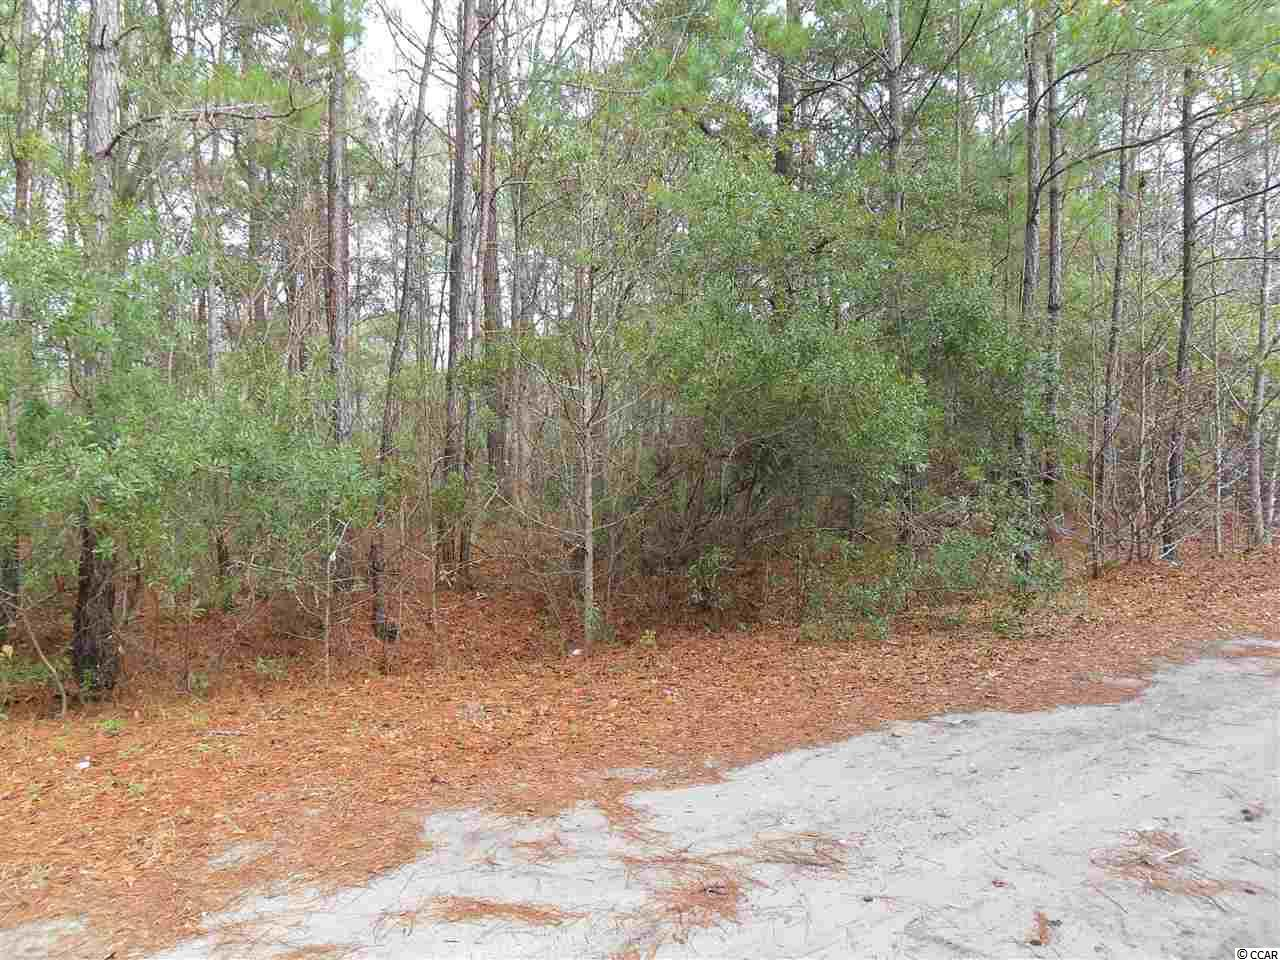 THIS IS LOT #3, WHICH IS ONE OF THREE LOTS IN A LARGER PARCEL, THAT ARE ALL FOR SALE.*See Documents for a portion of the Plat* THE LOT IS NON-BUILDABLE UNTIL CONDITIONS OF THE GEORGETOWN COUNTY WATER AND SEWER DISTRICT EXTENSION POLICY ARE MET. TAP-IN-FEES MUST BE PAID BY PURCHASER. Square footage/acreage is approximate and not guaranteed. Buyer is responsible for verification.